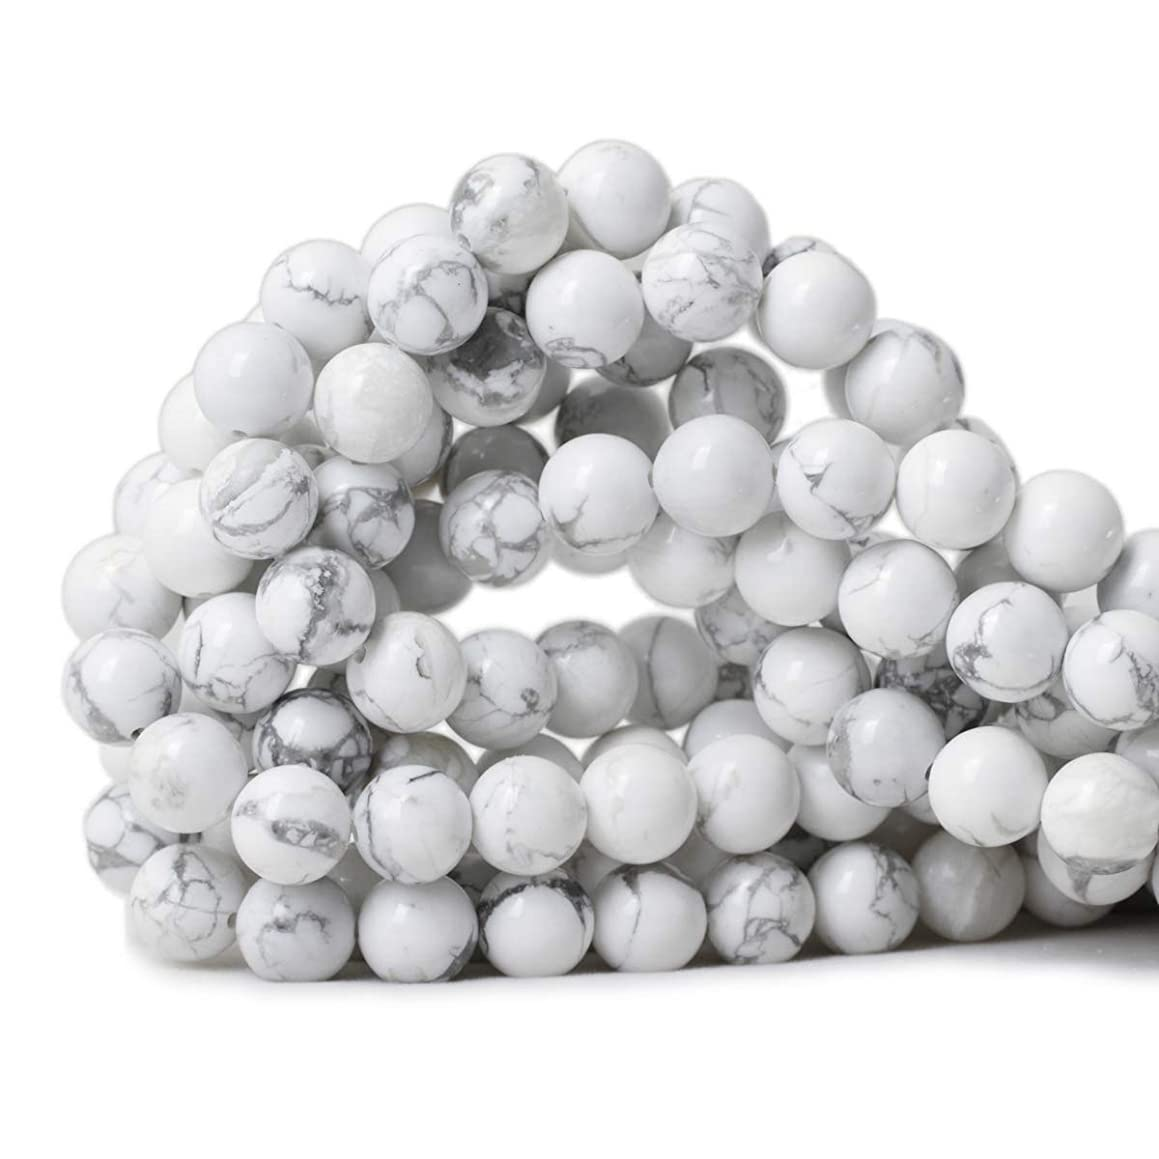 Qiwan 35PCS 10mm Gorgeous Natural White Howlite Round Beads Gemstone Loose Beads for Jewelry Making 1 Strand 15